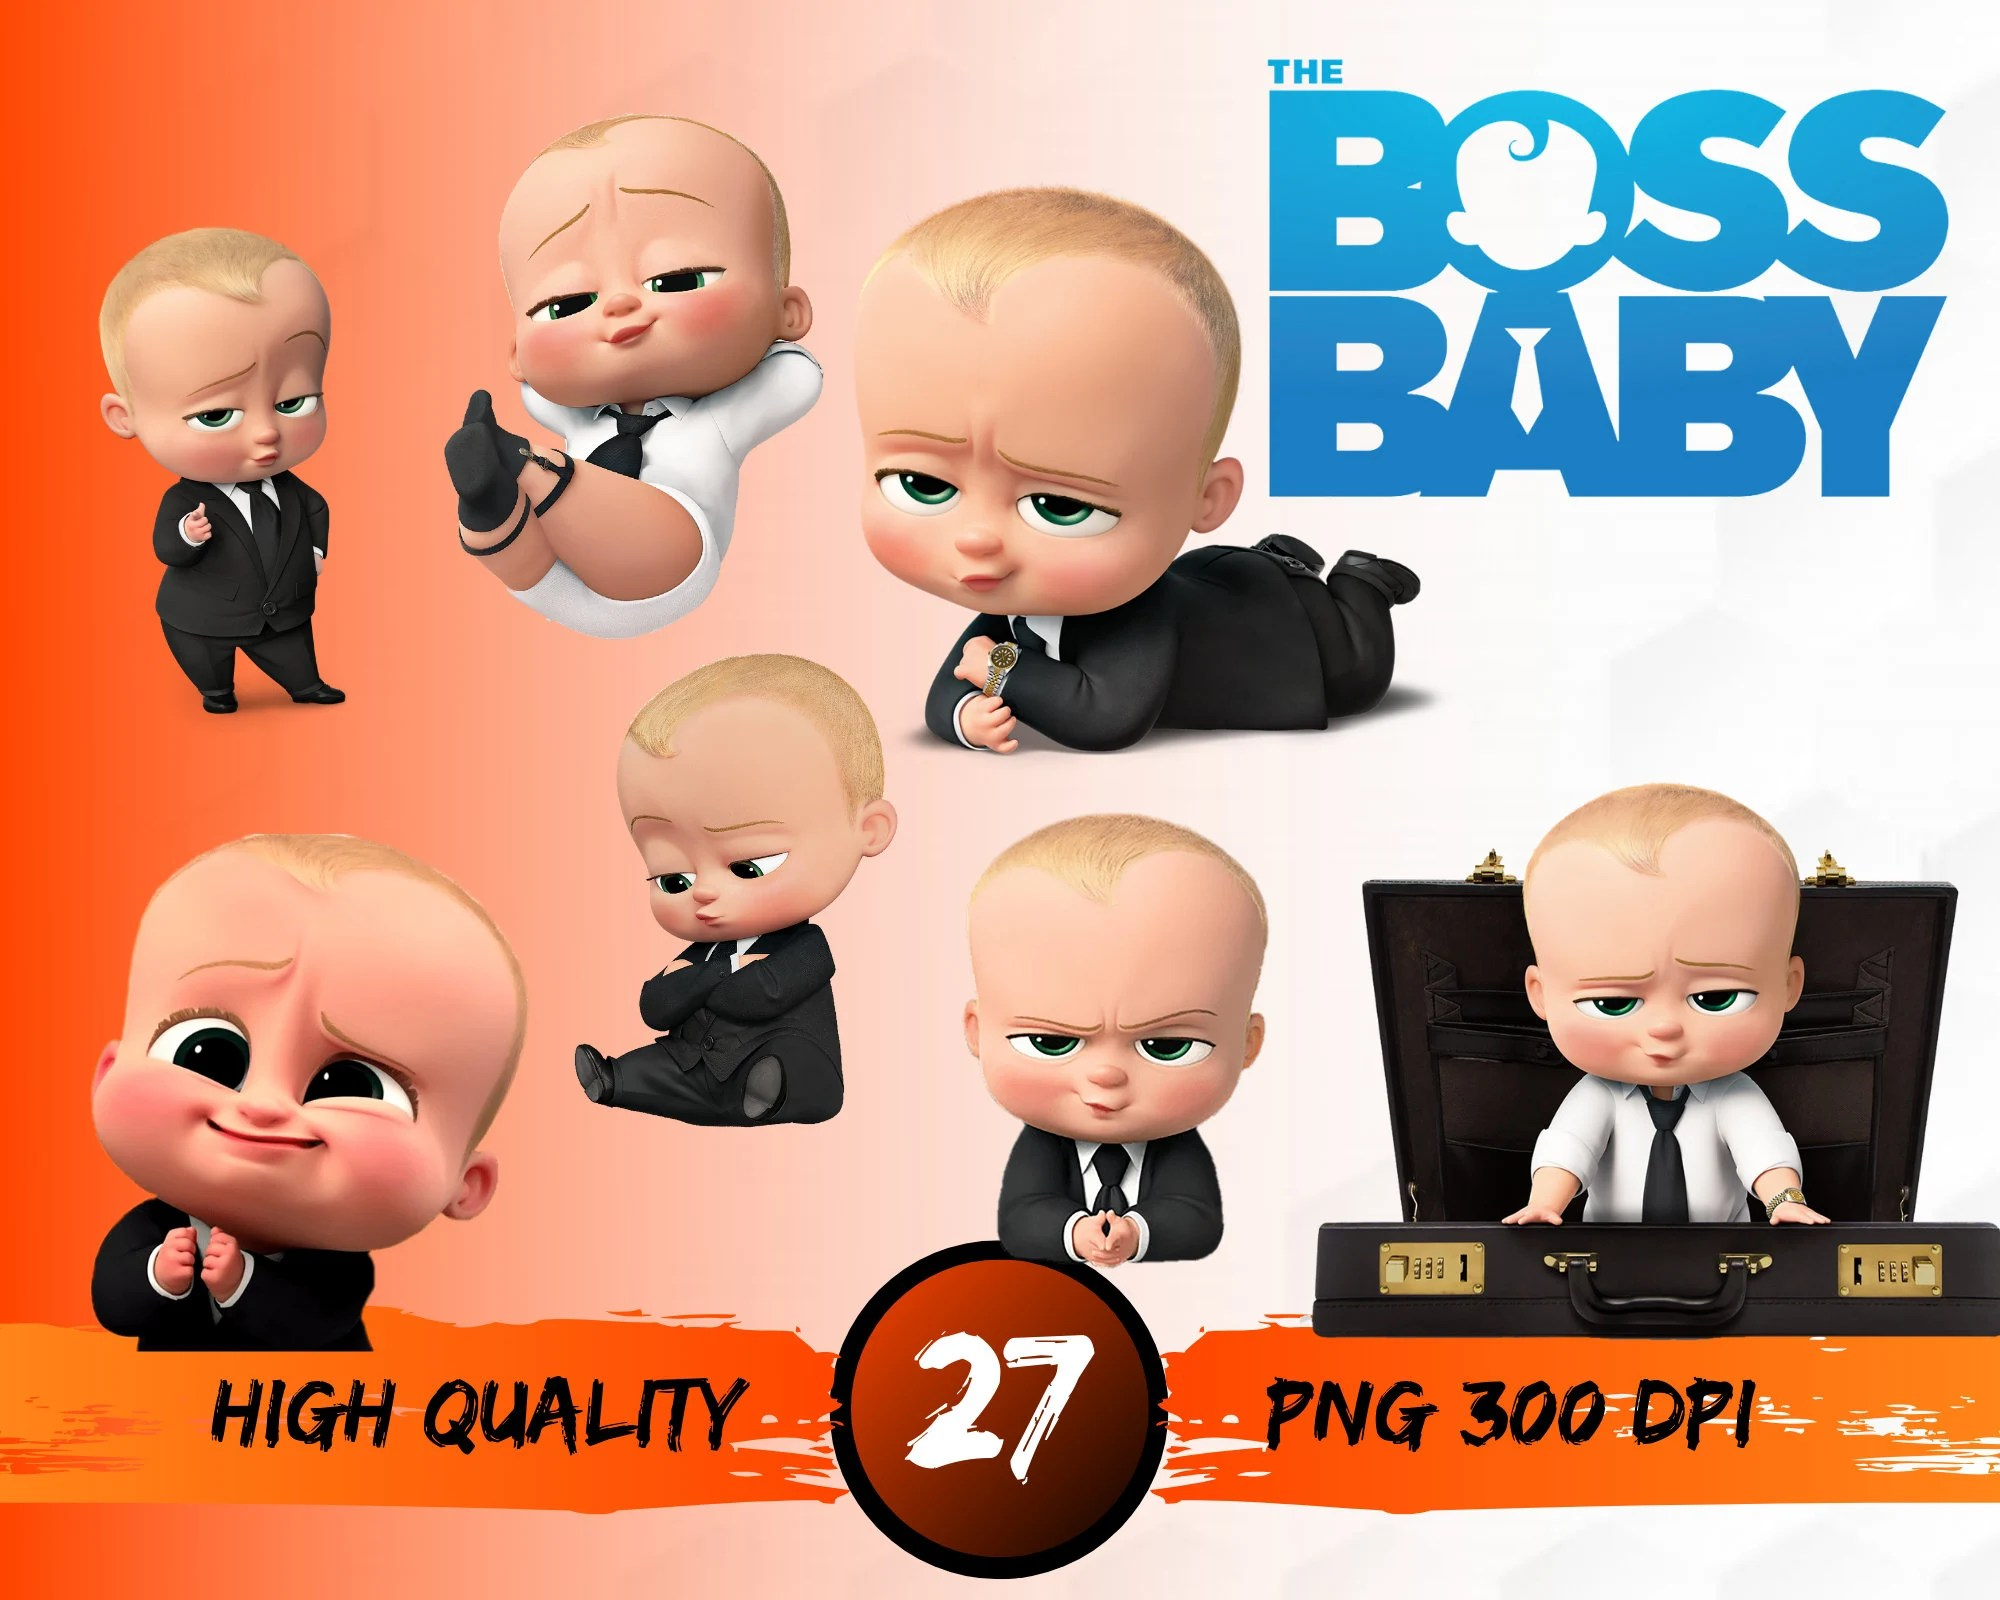 boss baby images etsy